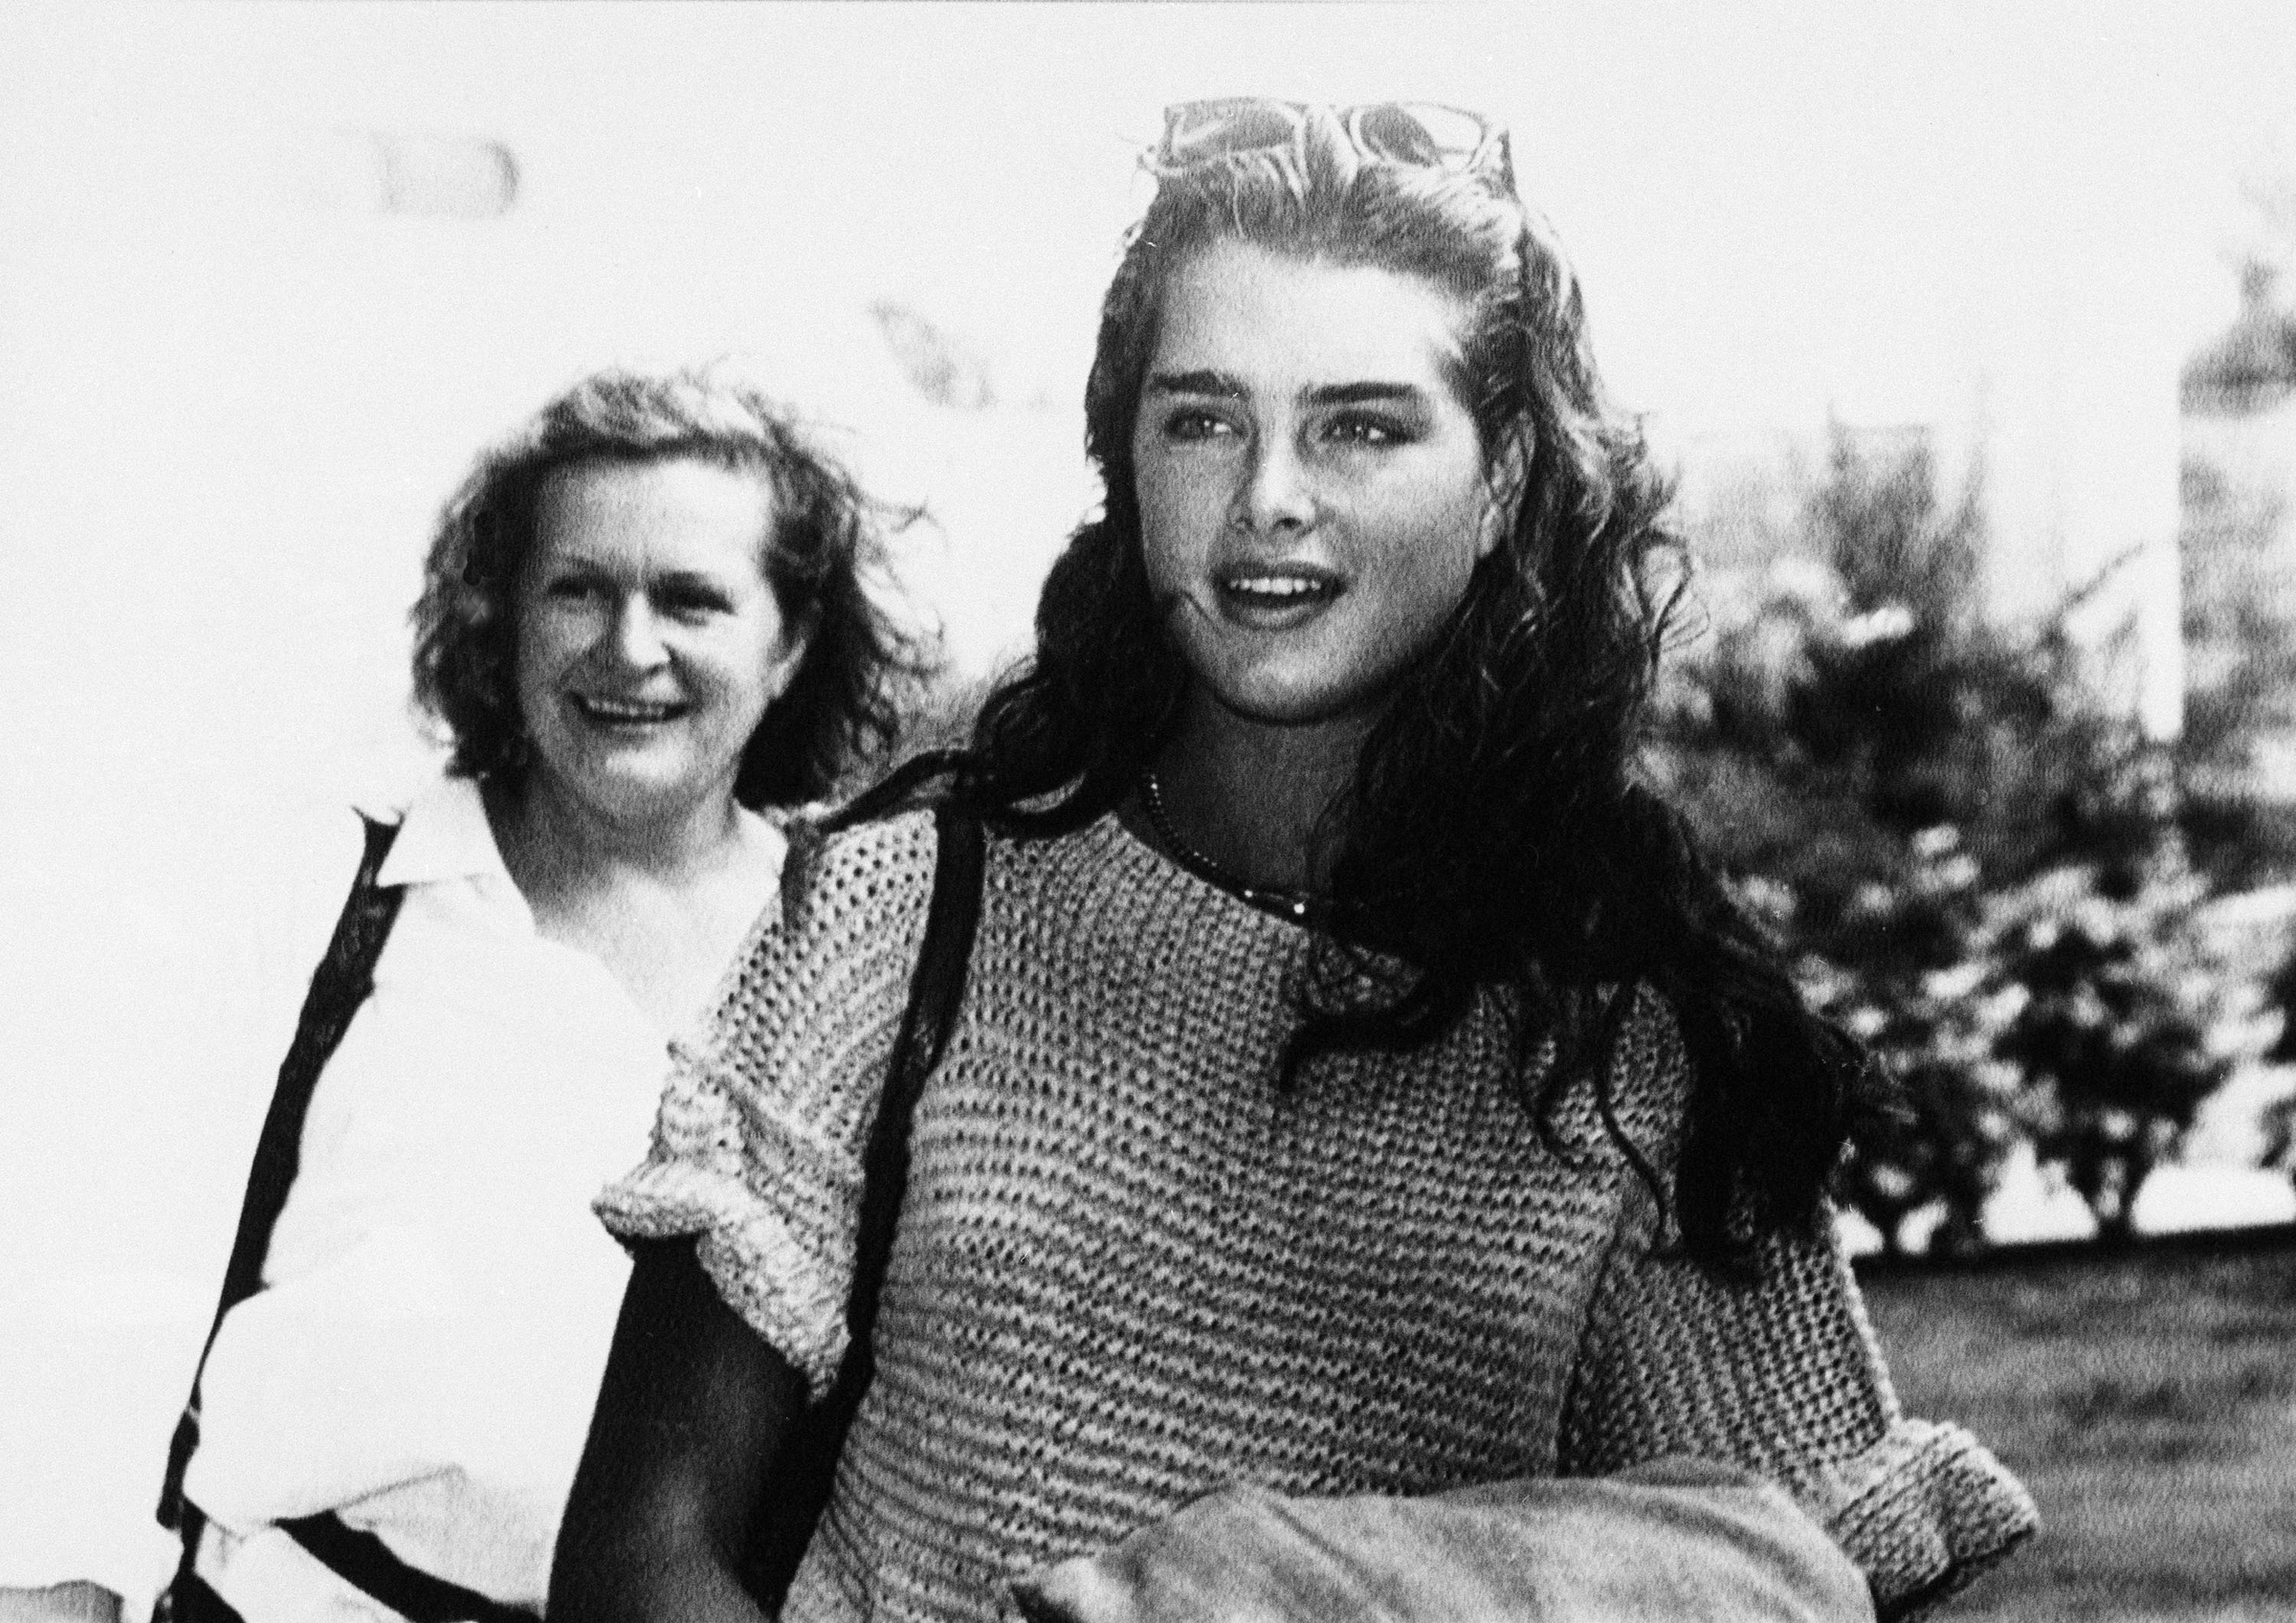 Brooke Shields sets record straight about mother, child stardom in new memoir